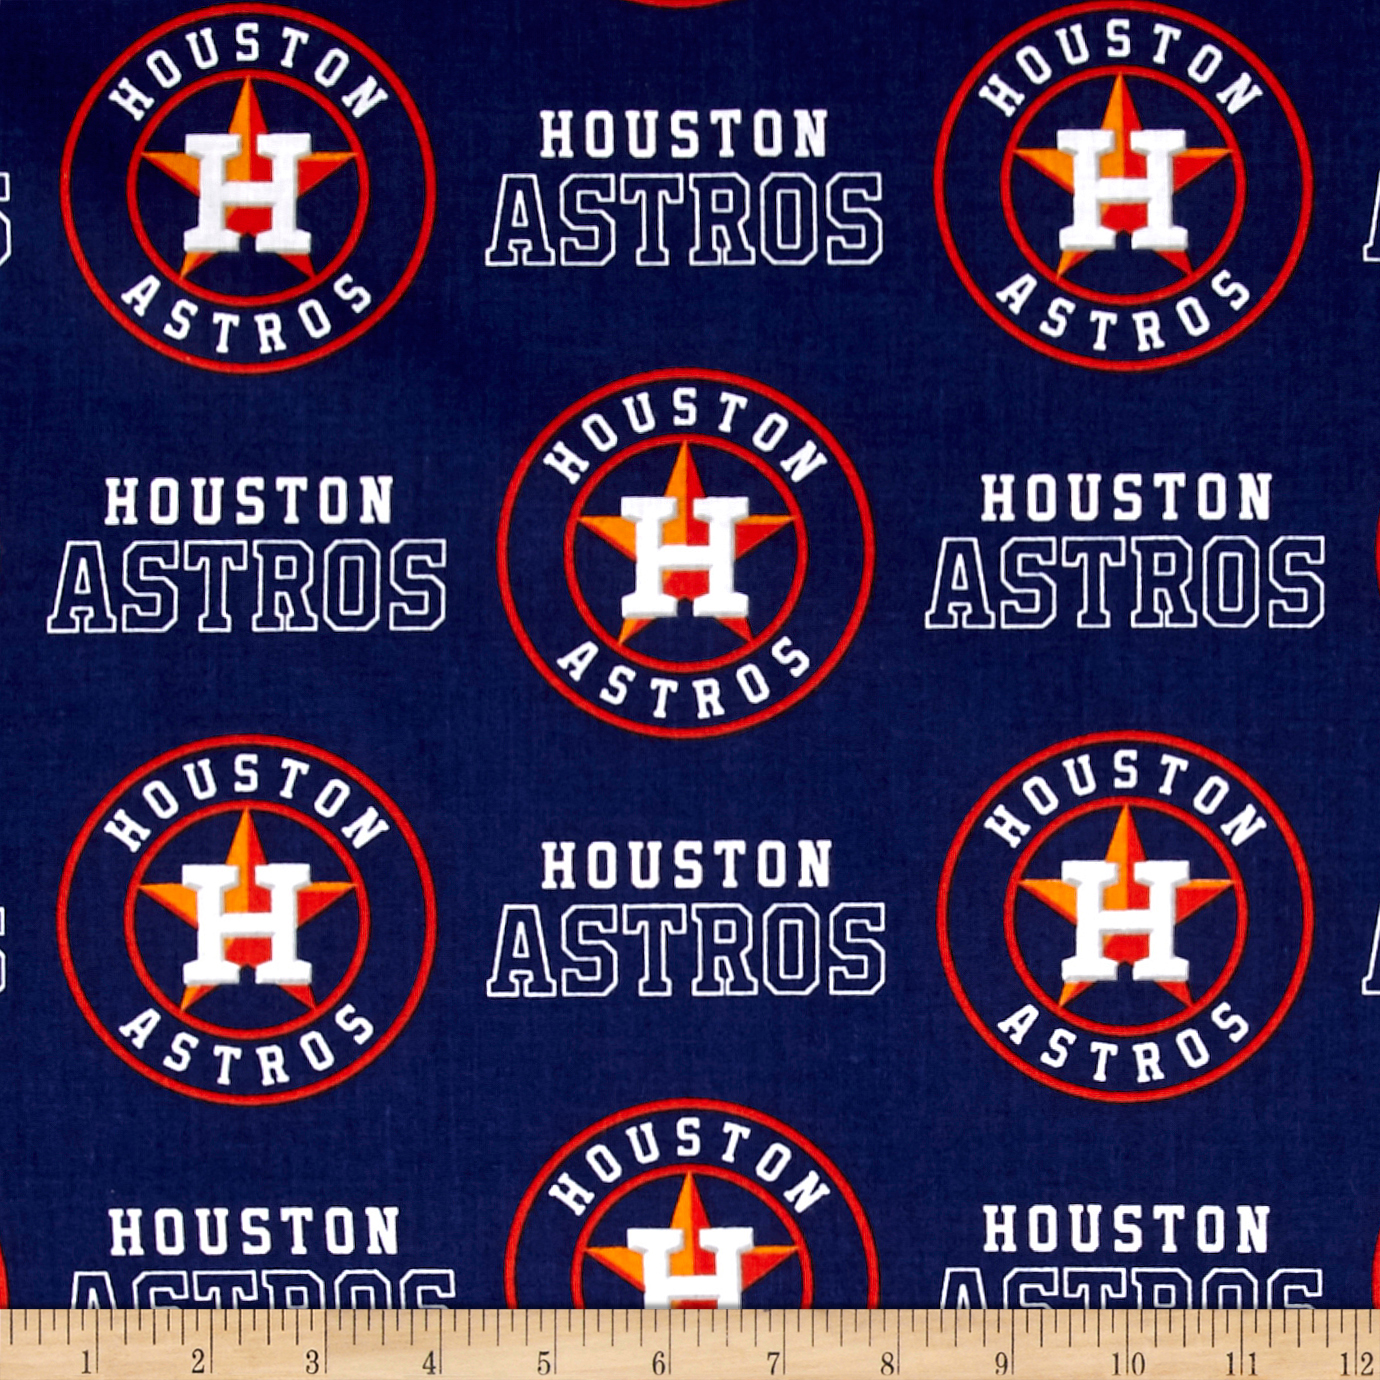 Houston Astros Cotton Broadcloth Navy Fabric by Fabric Traditions in USA